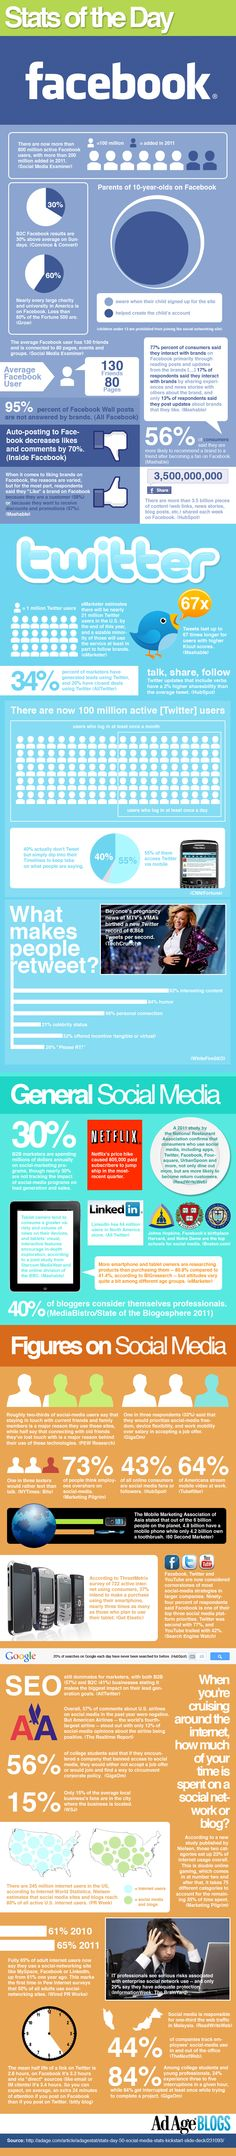 Infographic: 50 Hot New Social-Media Stats from 2011